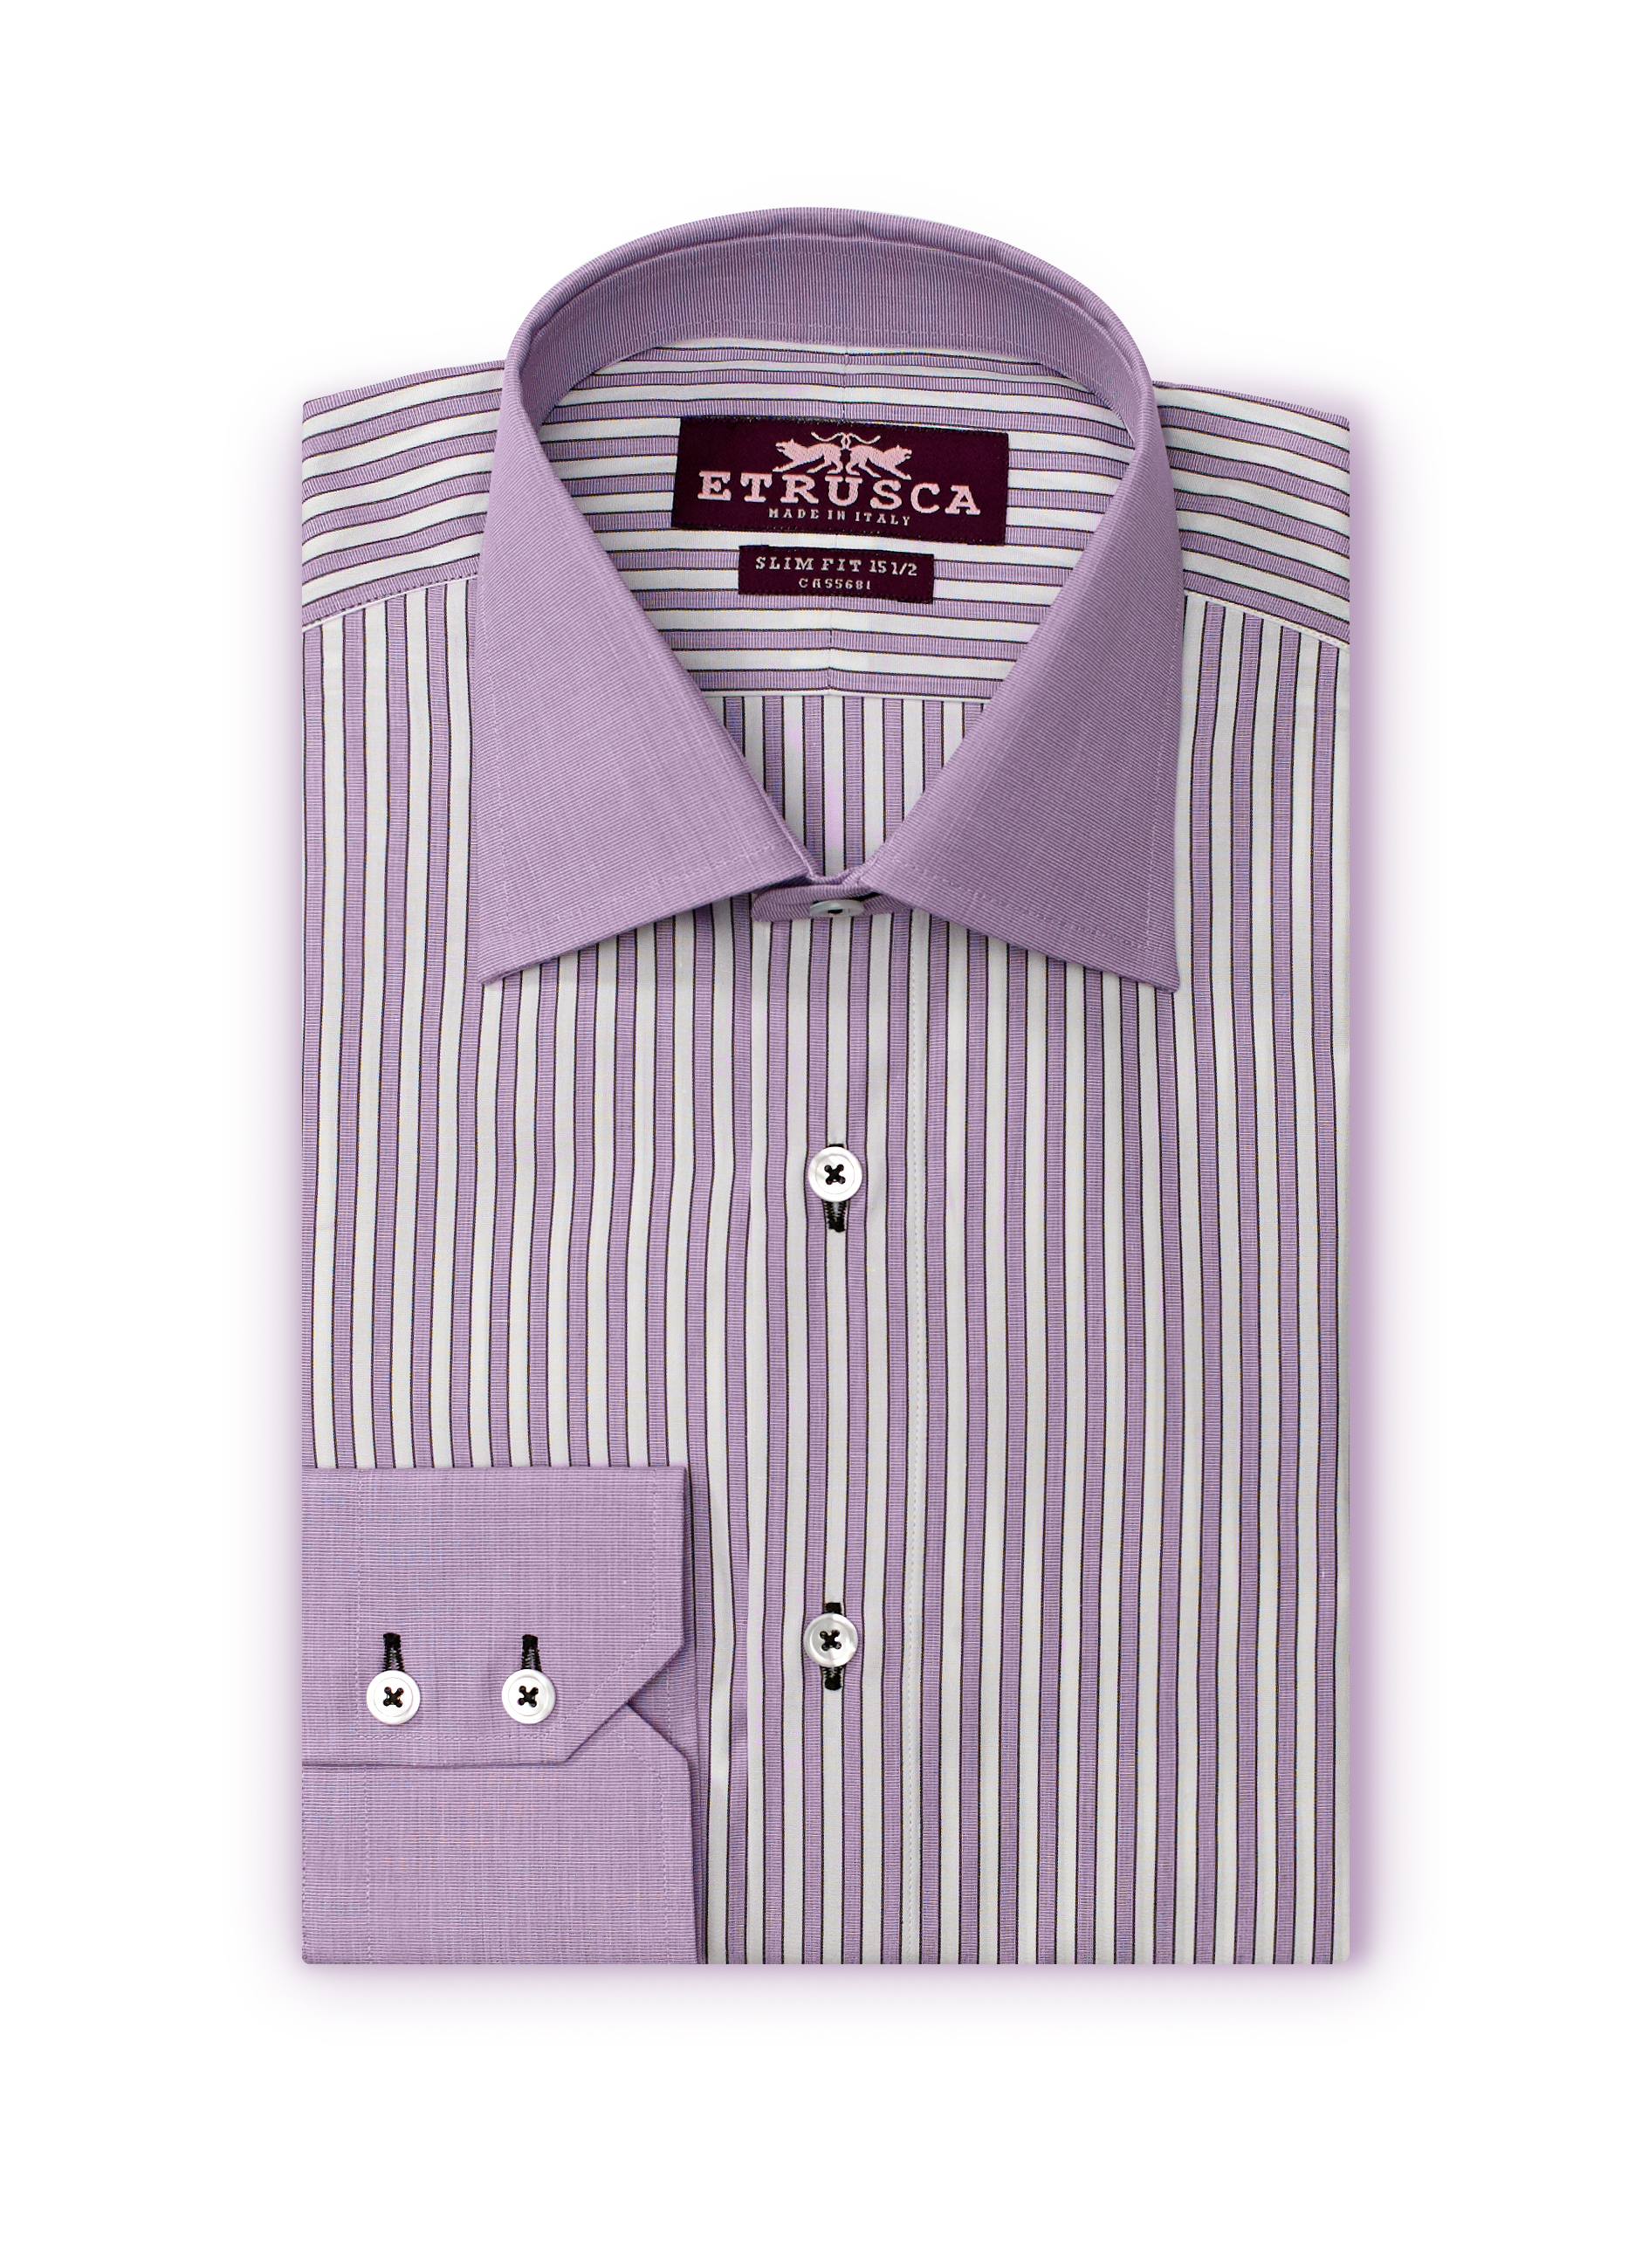 Etrusca-Collezione-Tre-Giorno-Purple-Brown-Stripes-Purple-Collar-Cuff-Folded-001-HR.jpg